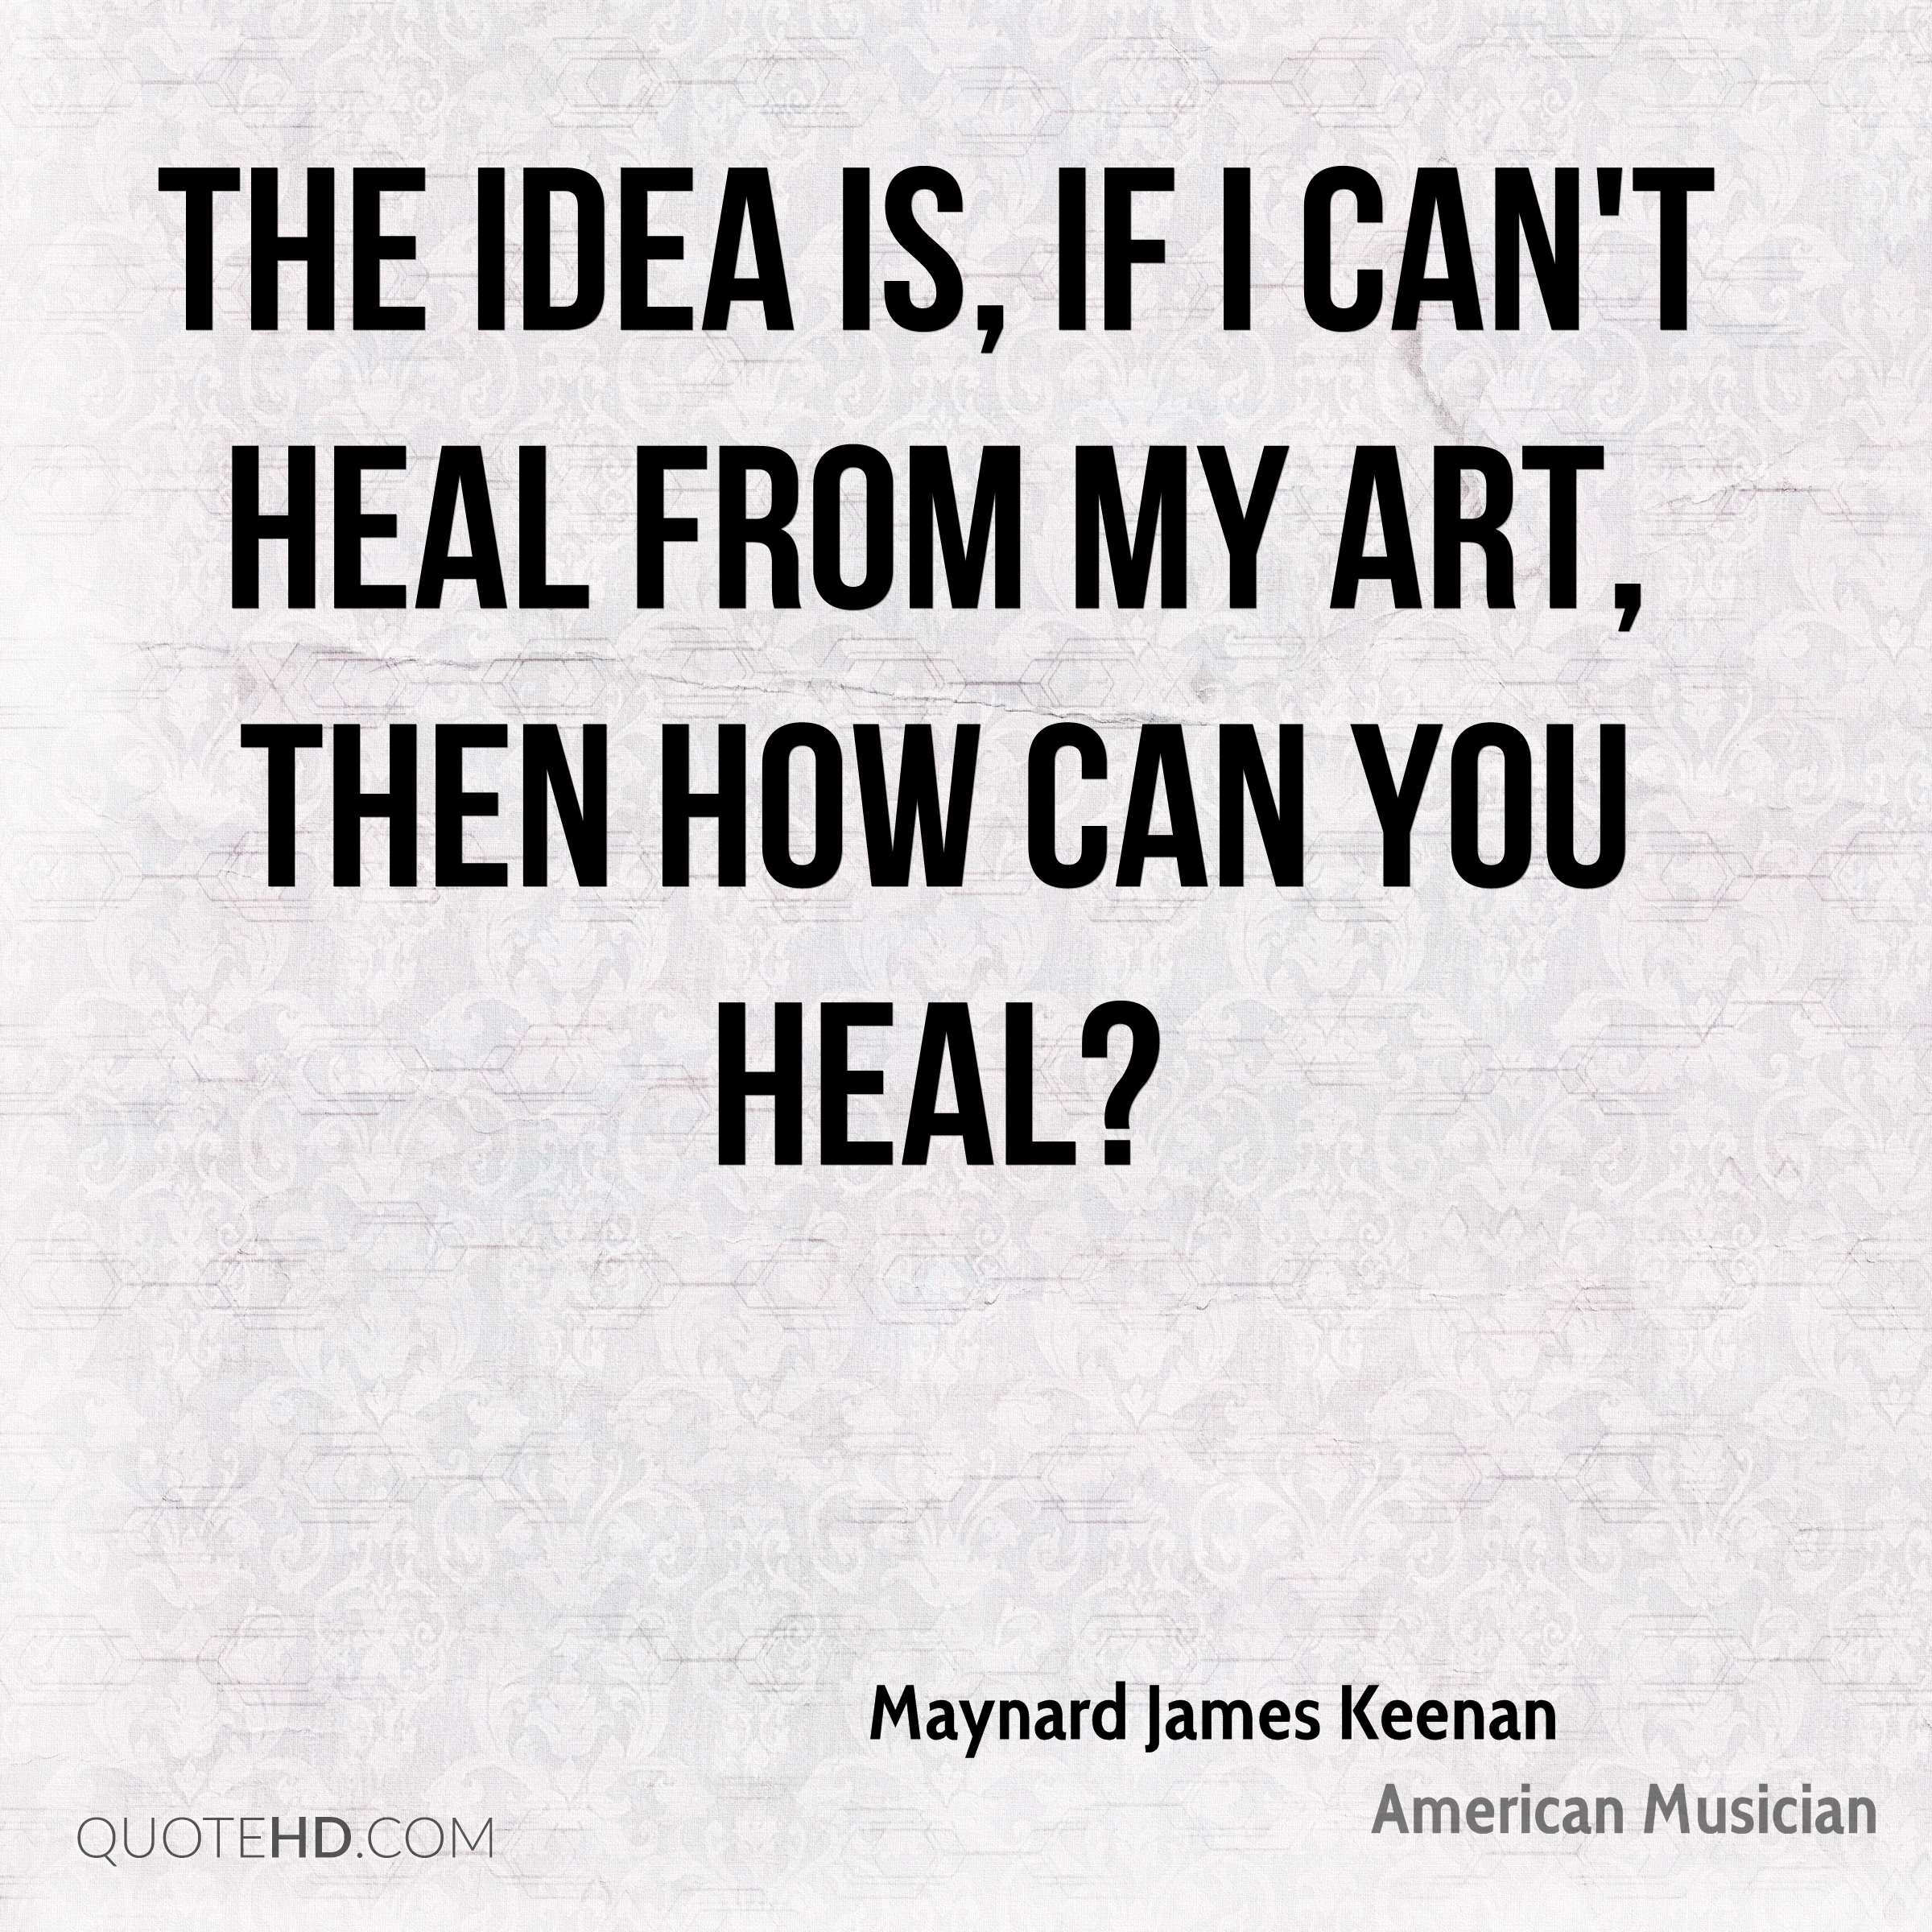 The idea is, if I can't heal from my art, then how can you heal?